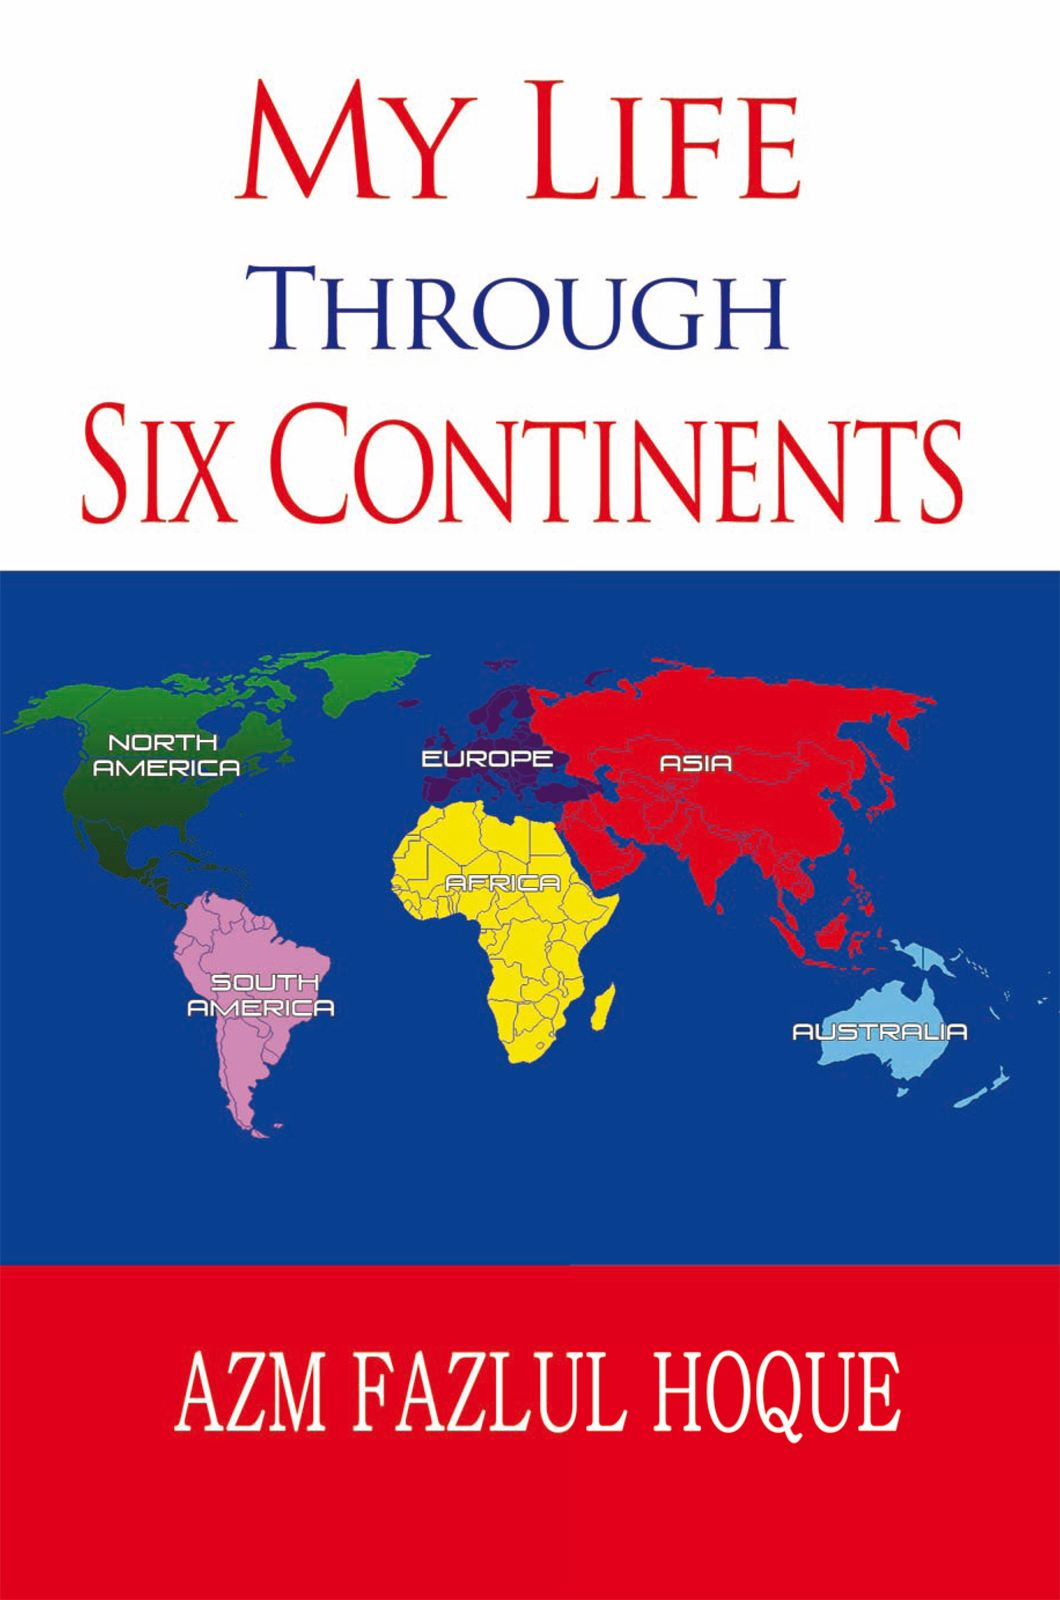 My Life Through Six Continents By: Azm Fazlul Hoque